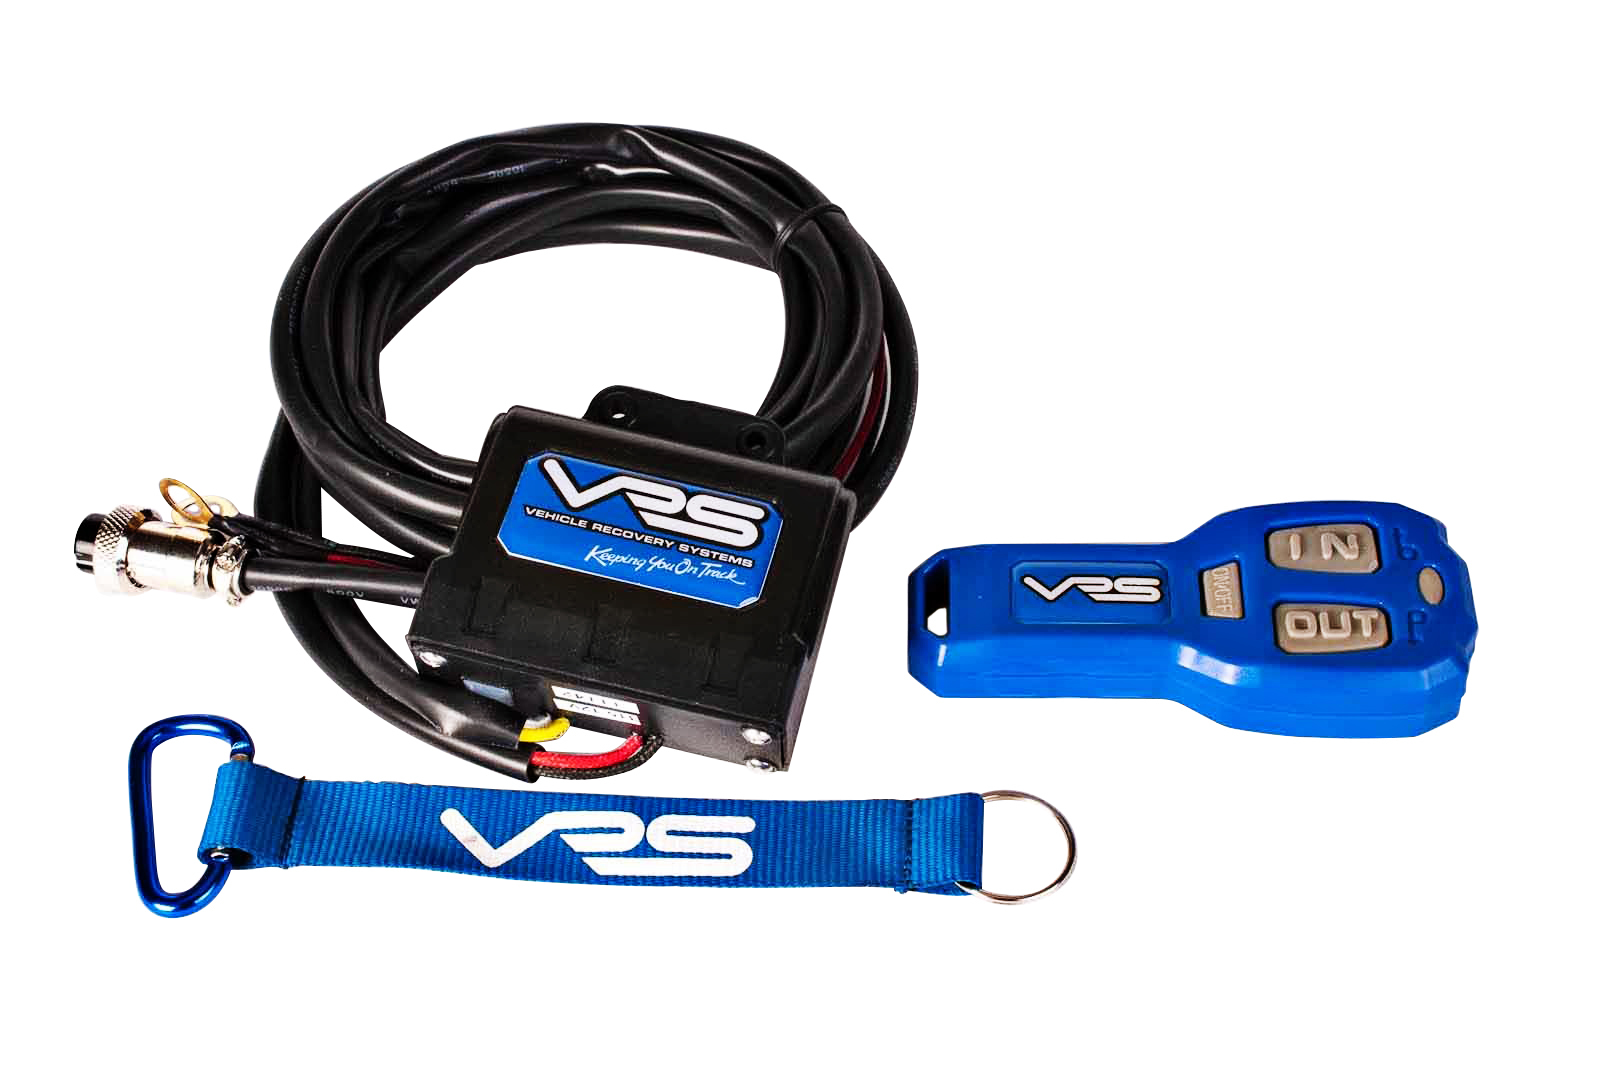 VMN also offers various winch accessories like winch wireless remote control for easy handling and control